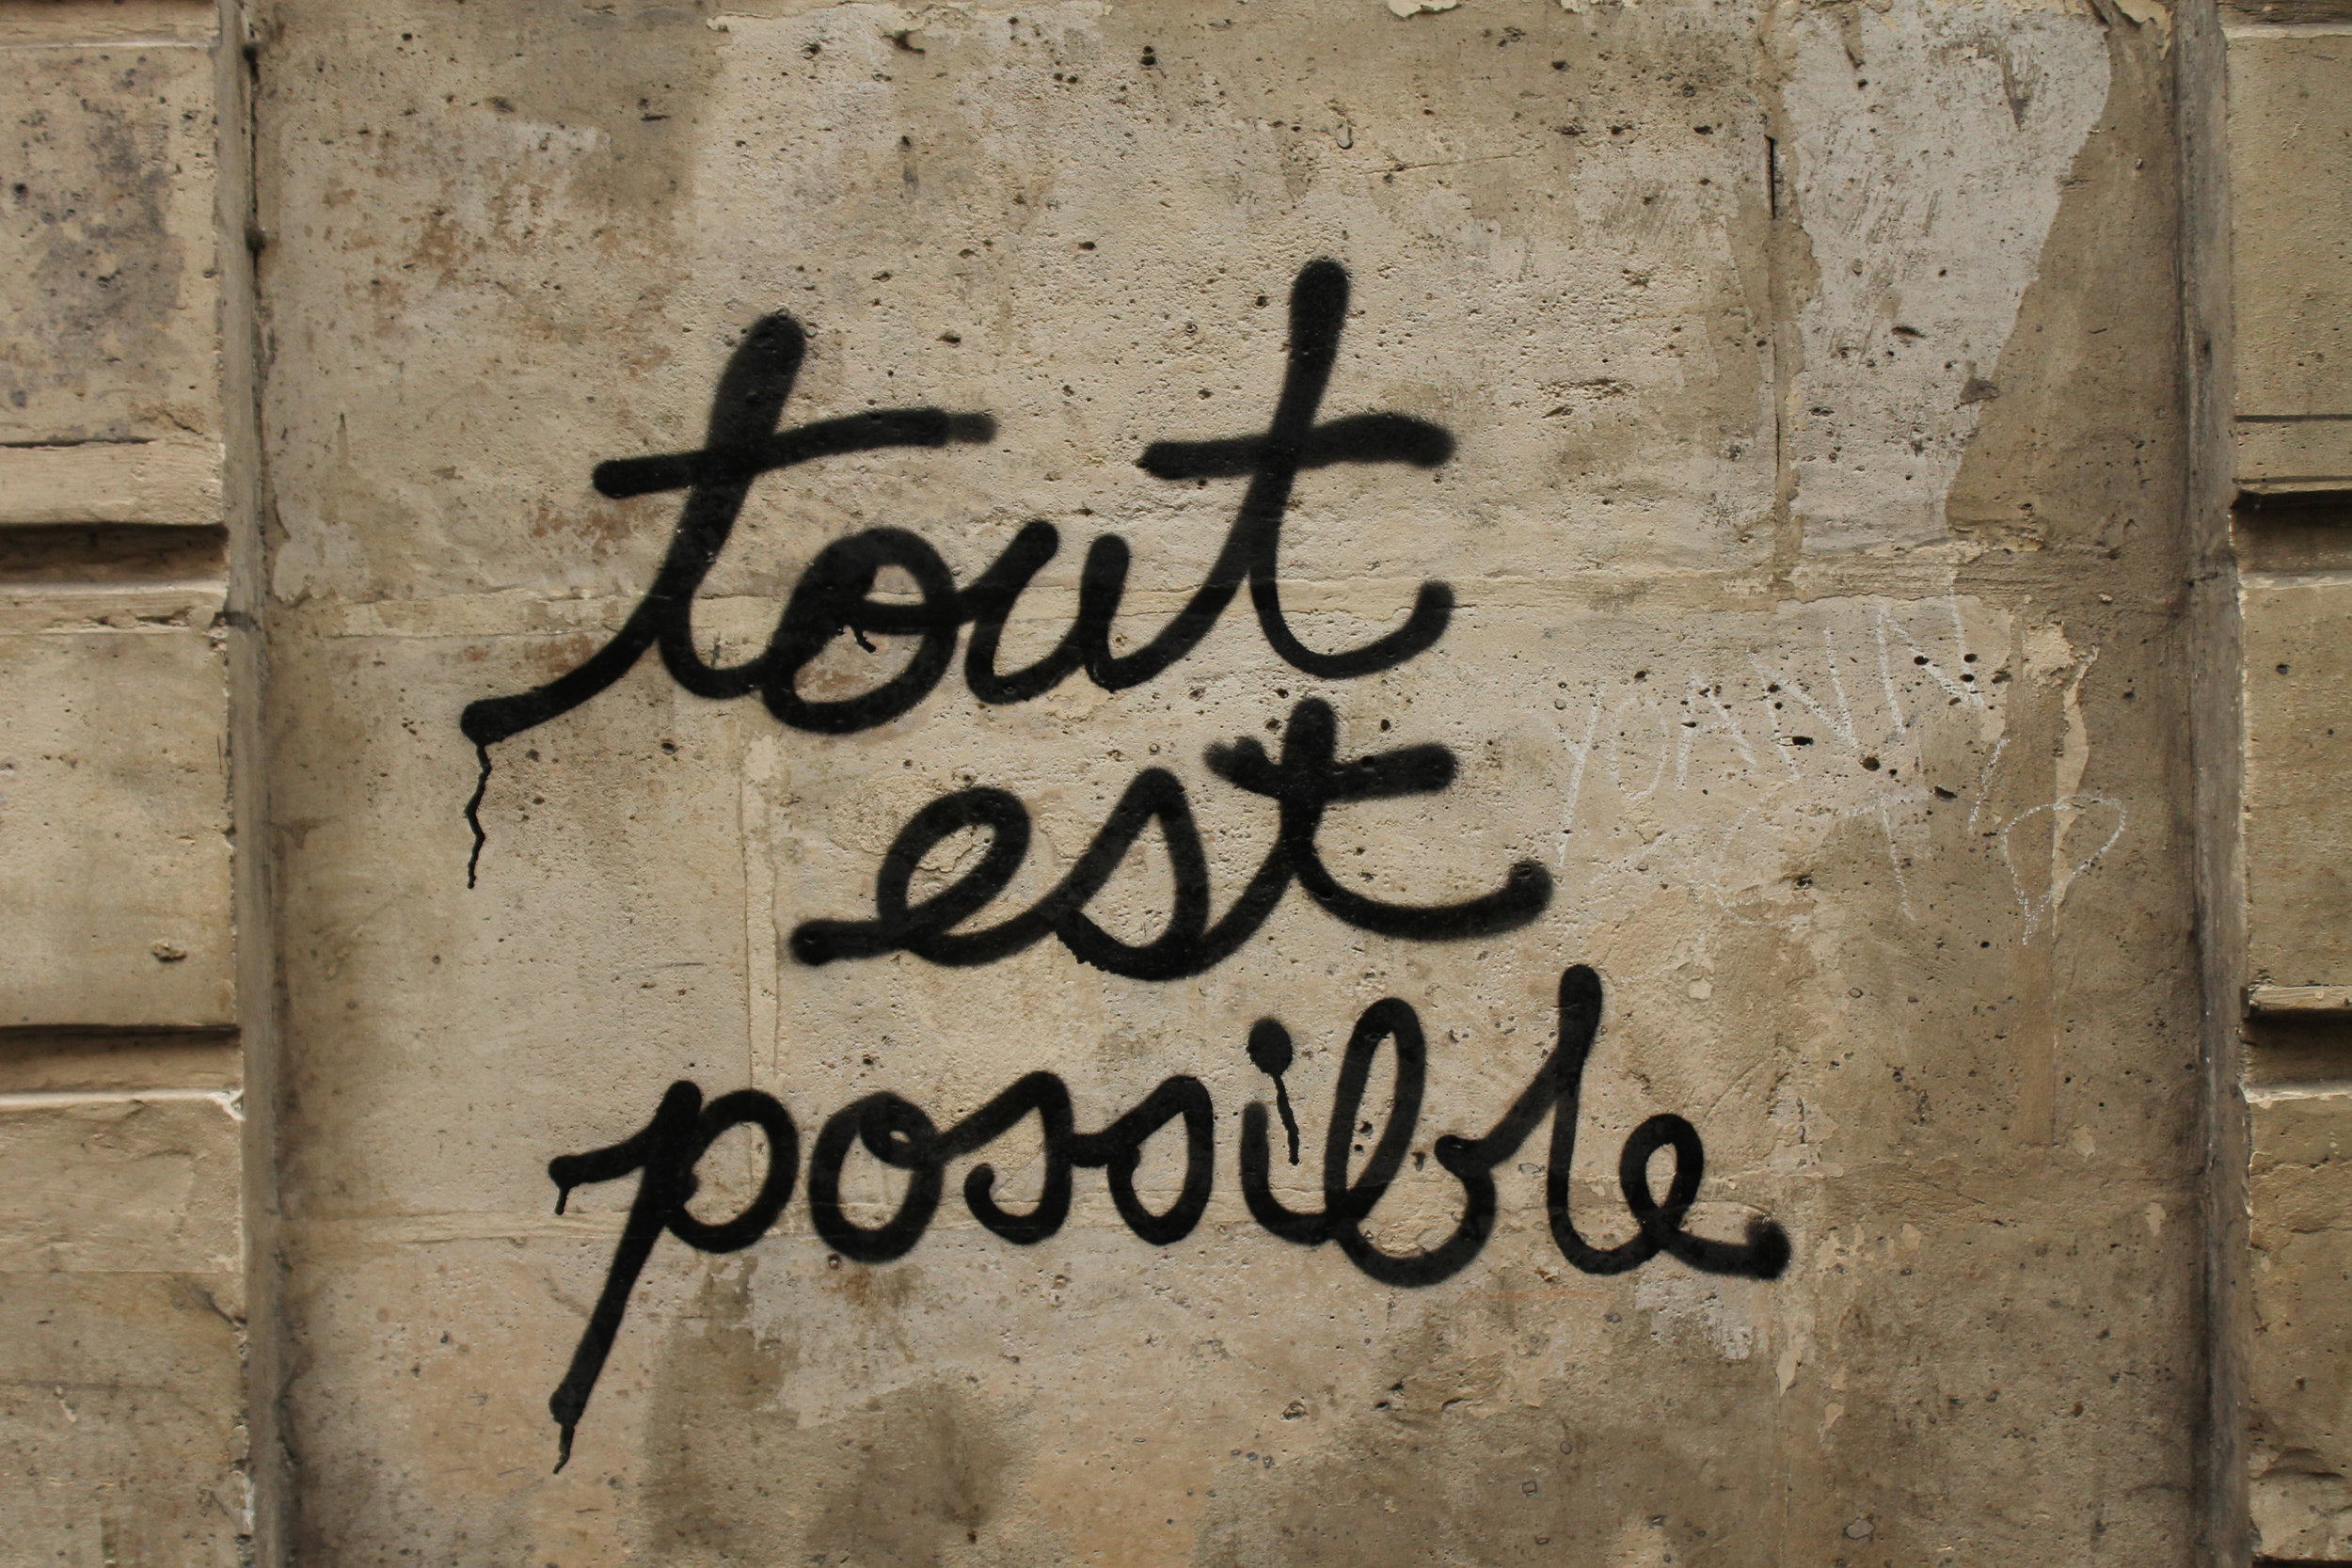 tout est possible graffiti print rebecca plotnick